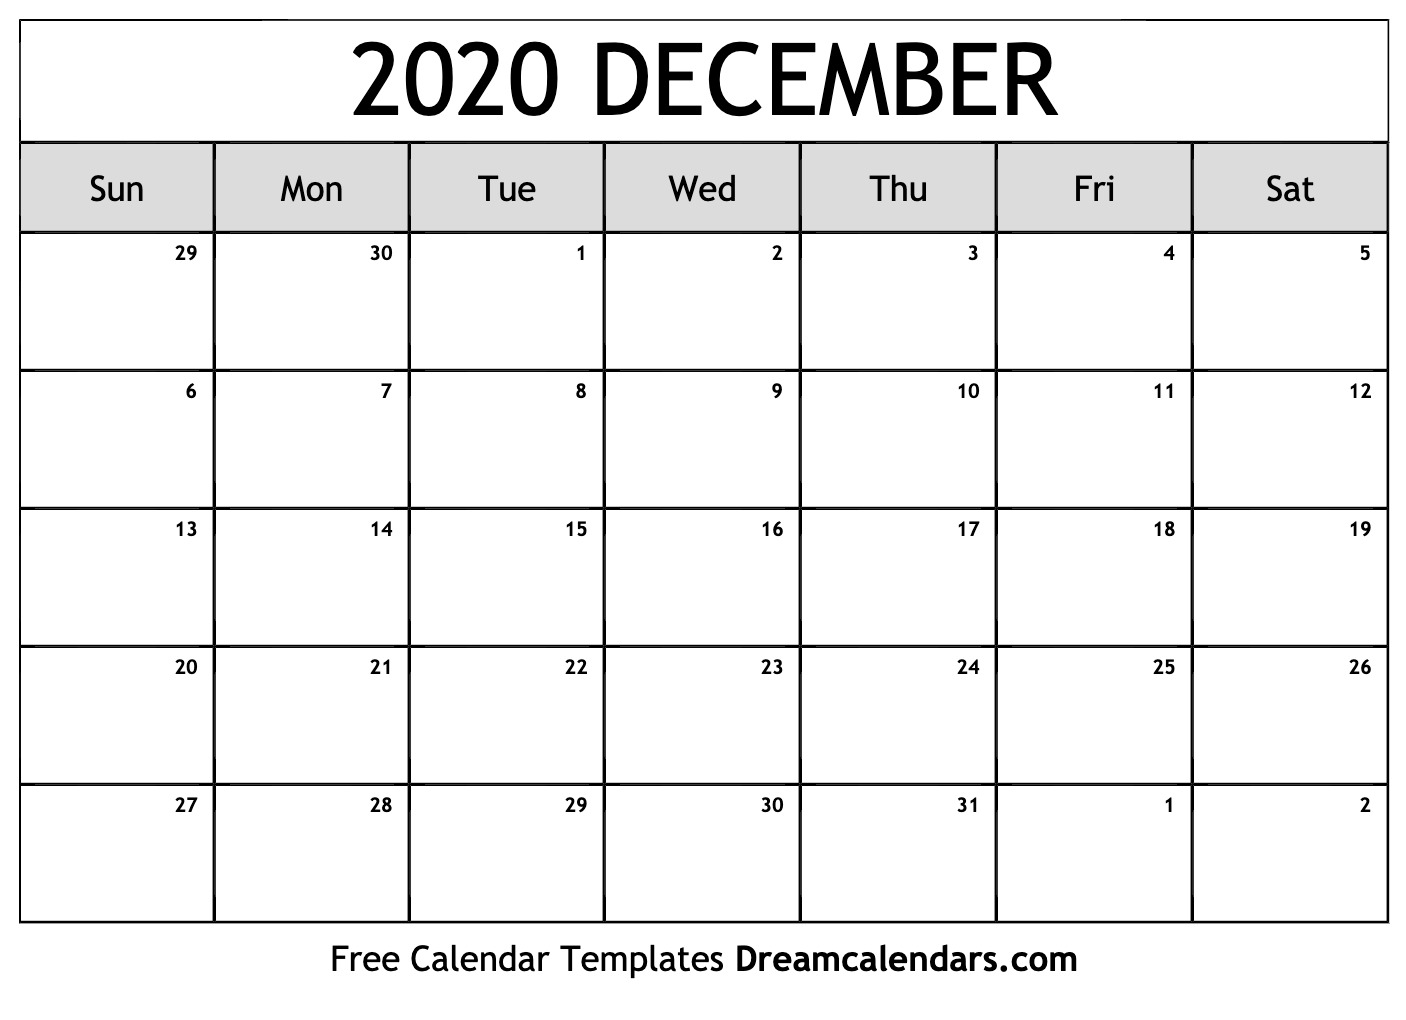 graphic regarding Free Printable 2020 Calendar identify December 2020 Calendar